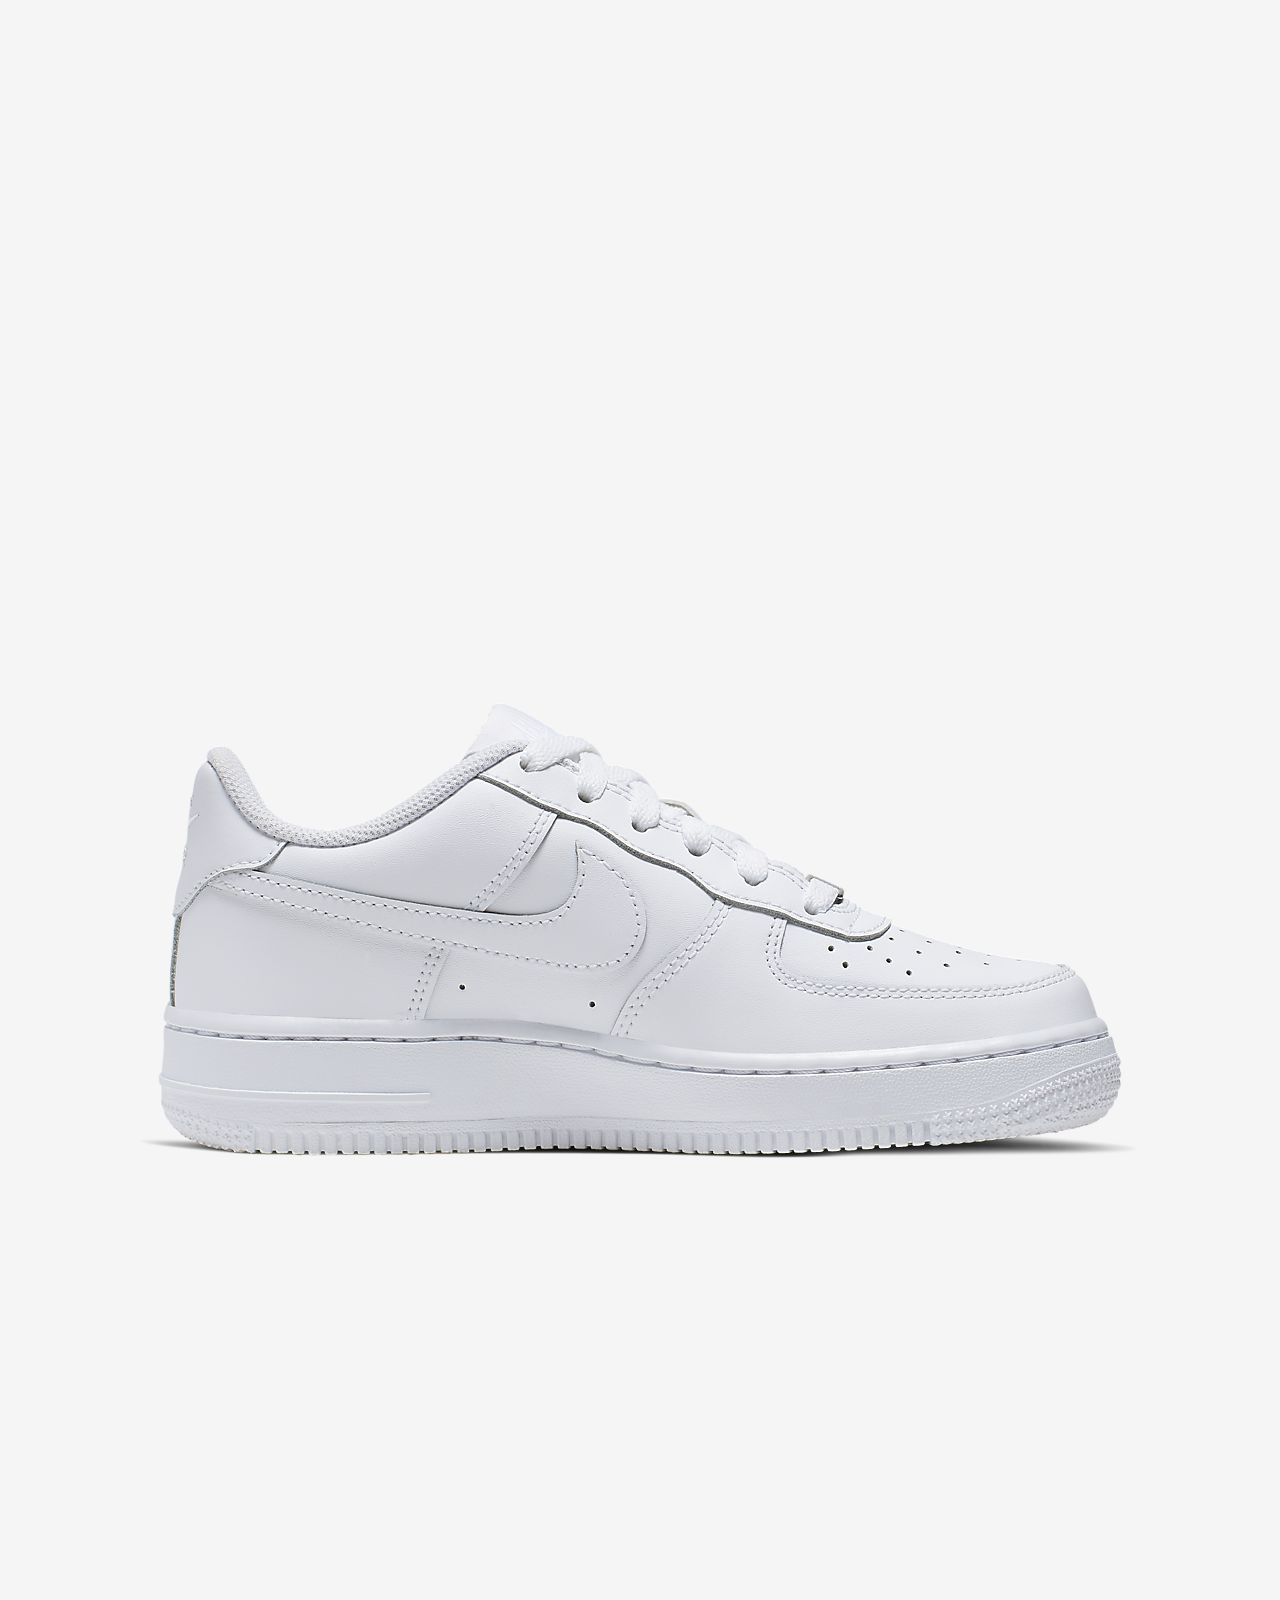 nike air force 1 5.5 nz